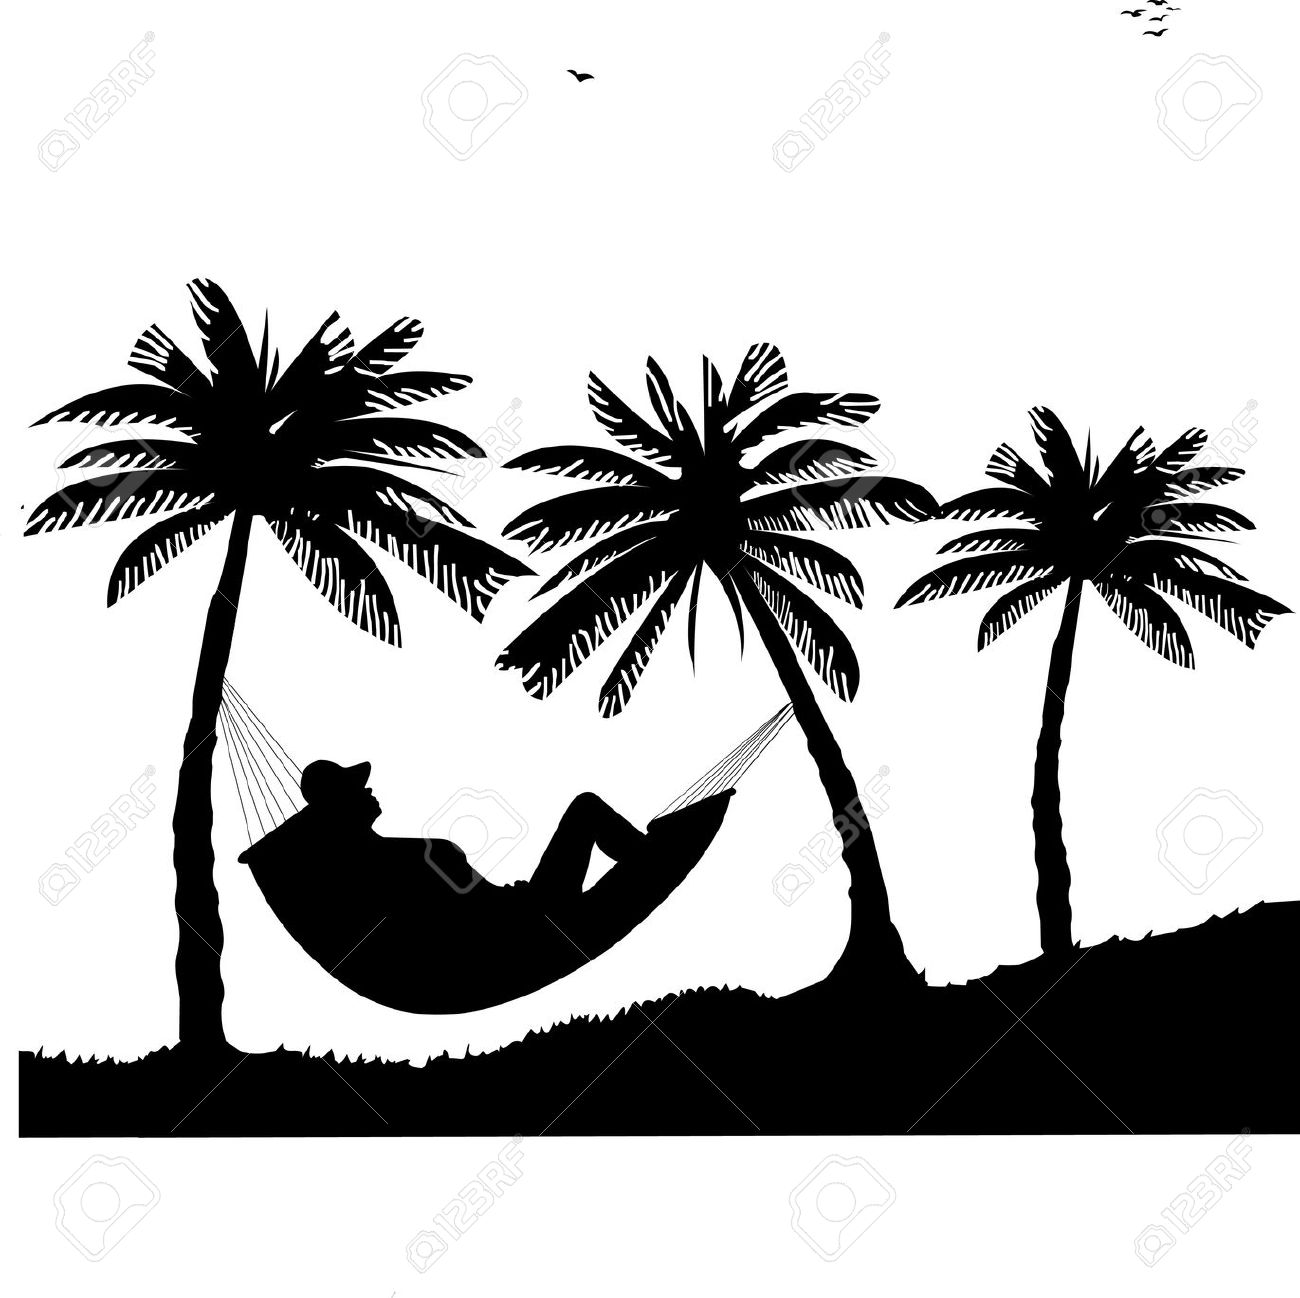 Hammock clipart #2, Download drawings